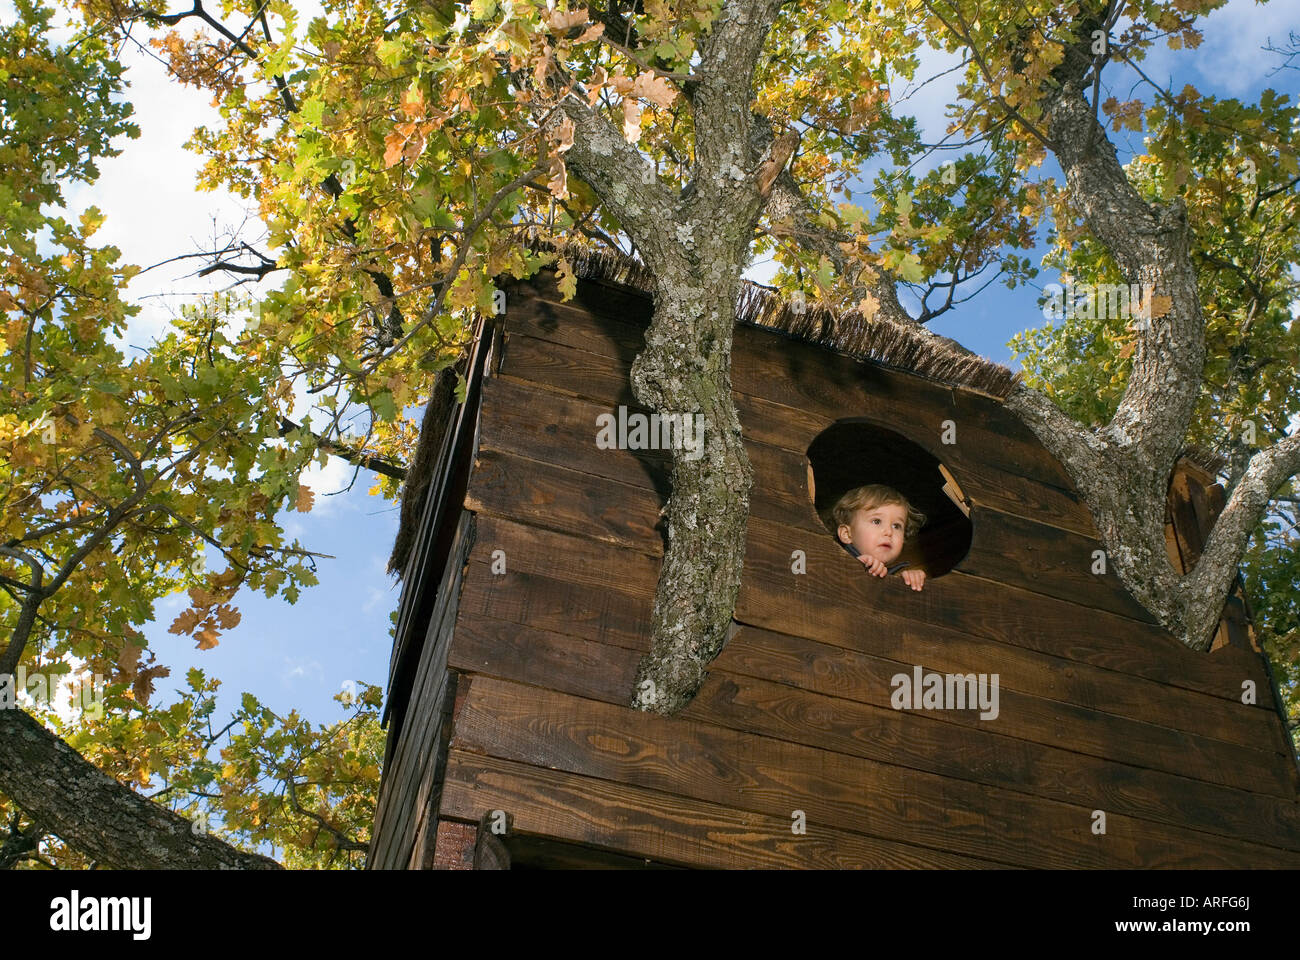 2-3 years old boy in a tree house - Stock Image